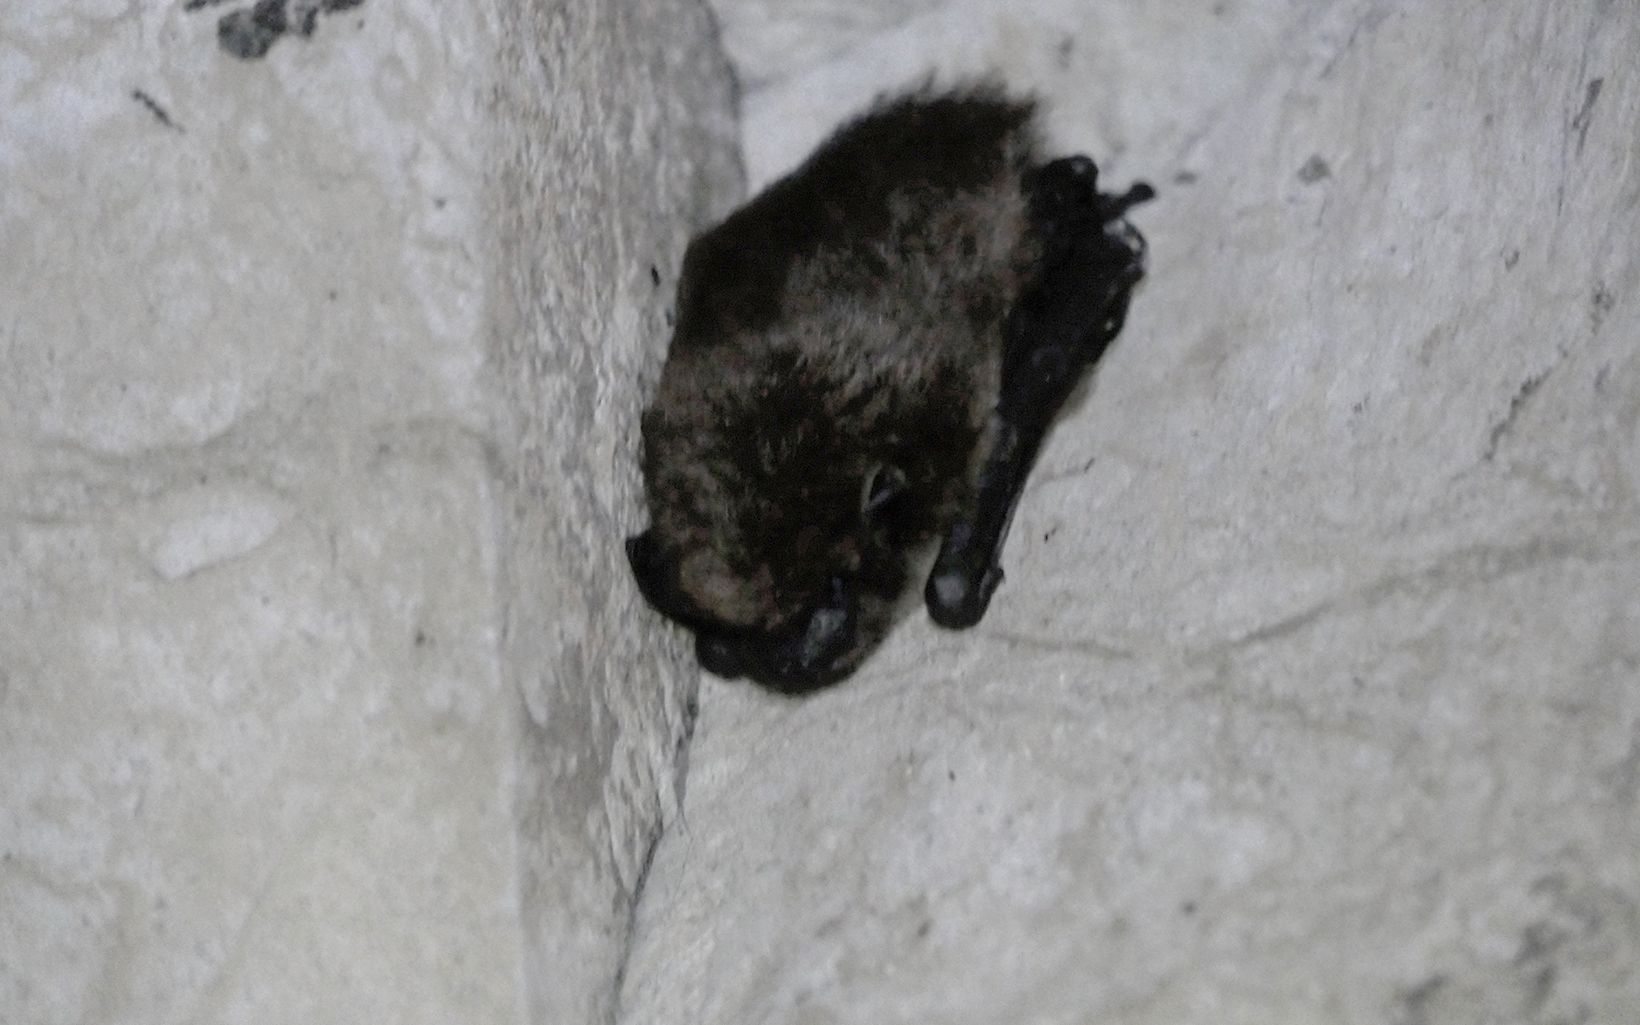 A hibernating tricolored bat (Perimyotis subflavus).